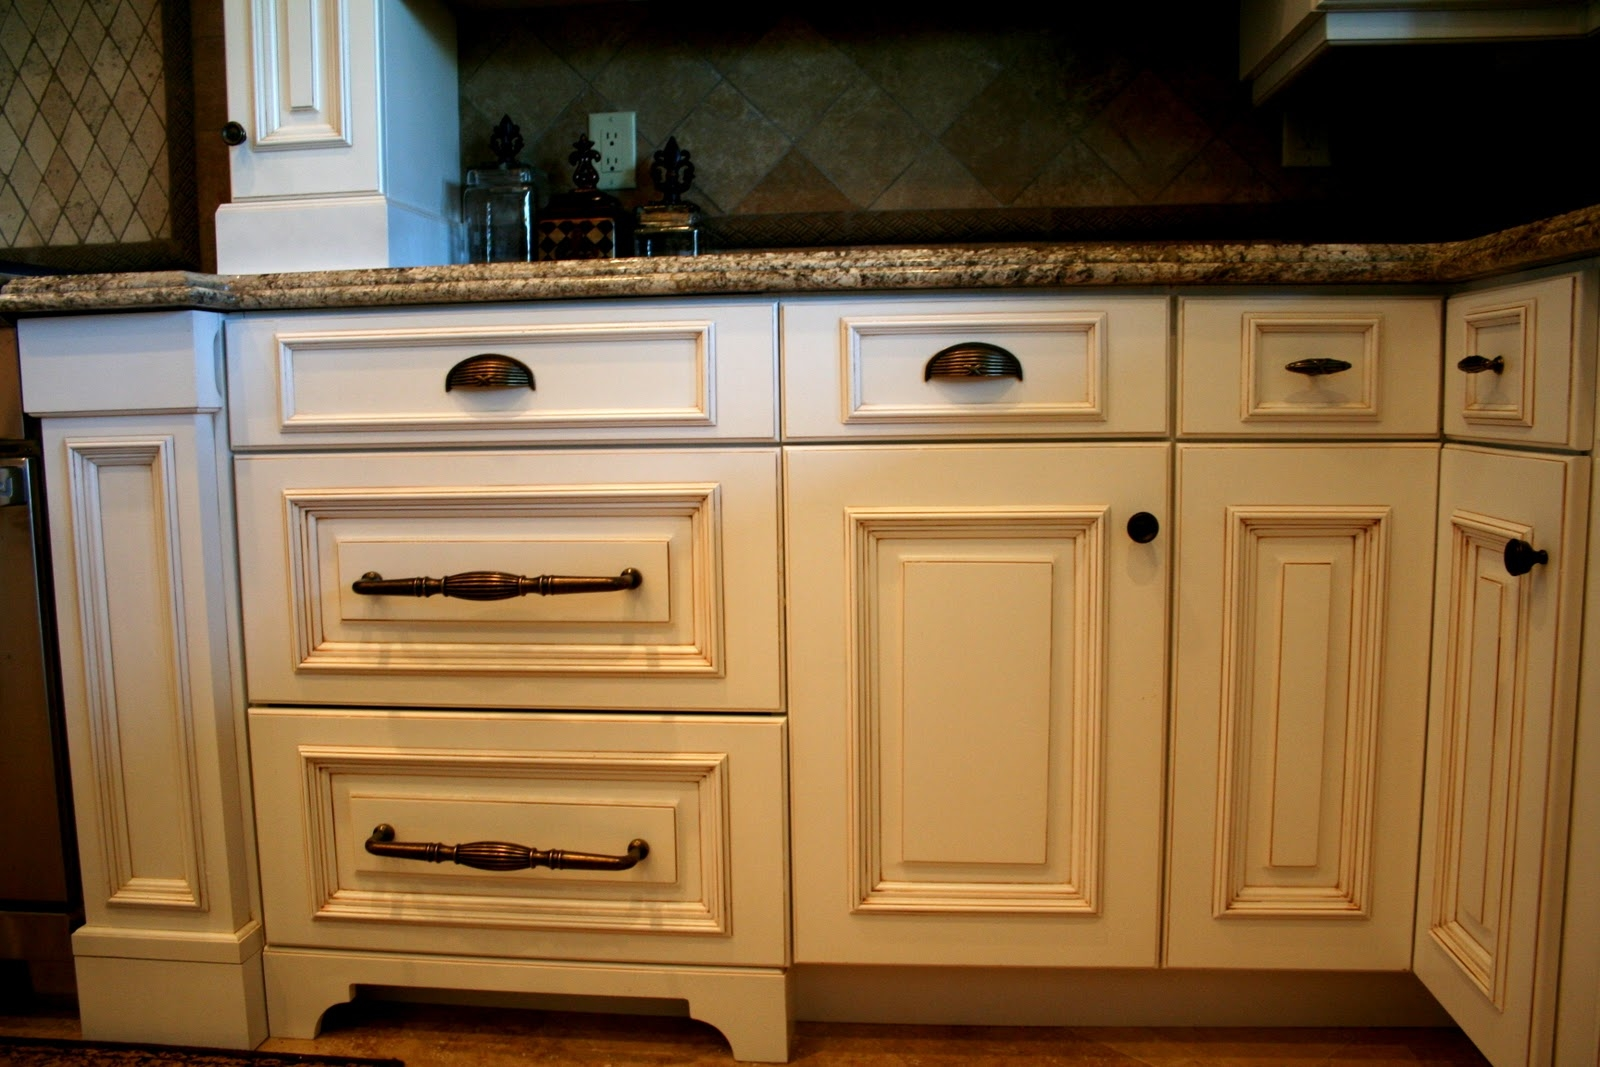 Kitchen Cabinet Knobs Handles Pulls